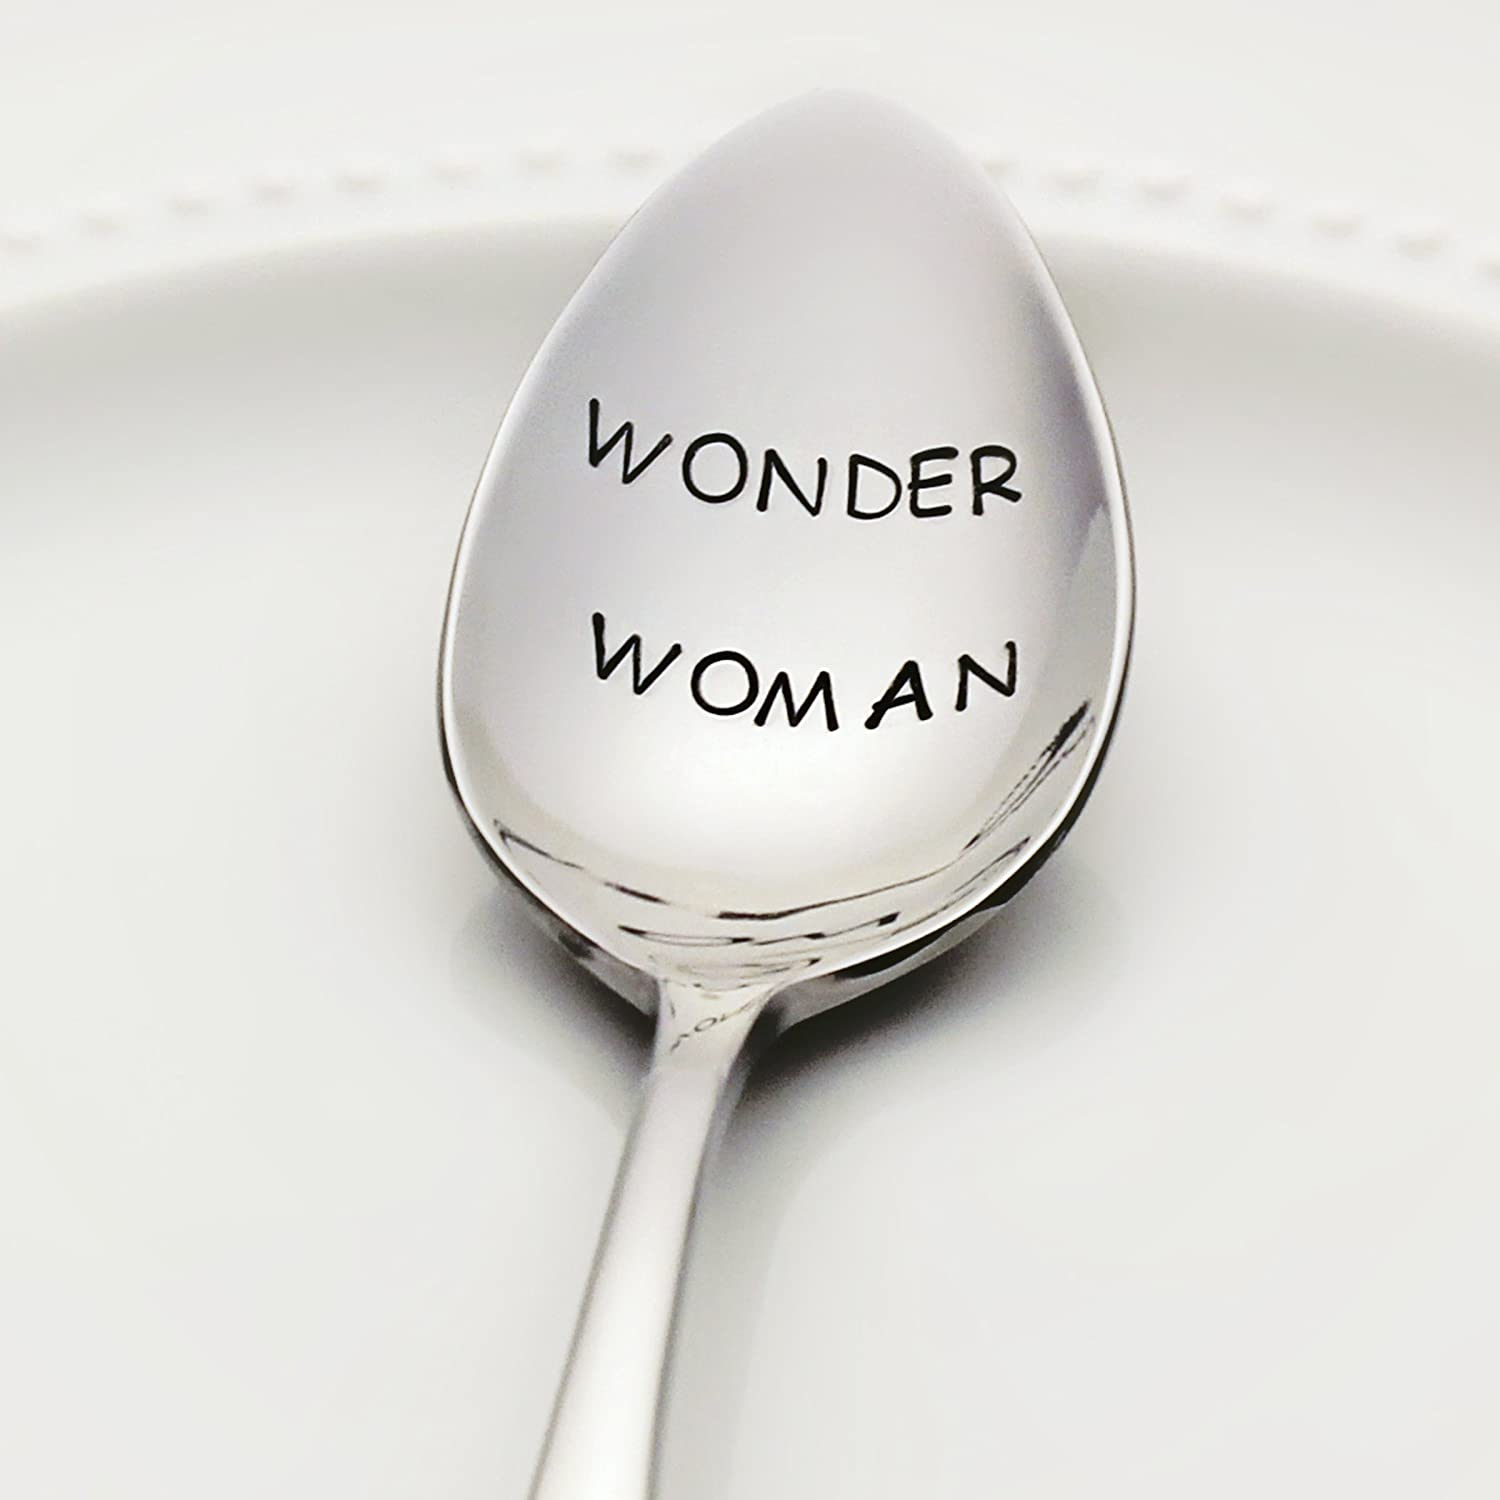 Wonder Woman - Stainless Steel Stamped Spoon | Stamped Silverware | Sorority Gifts for Women and Her | Unique Mother's Day Gift for Mom